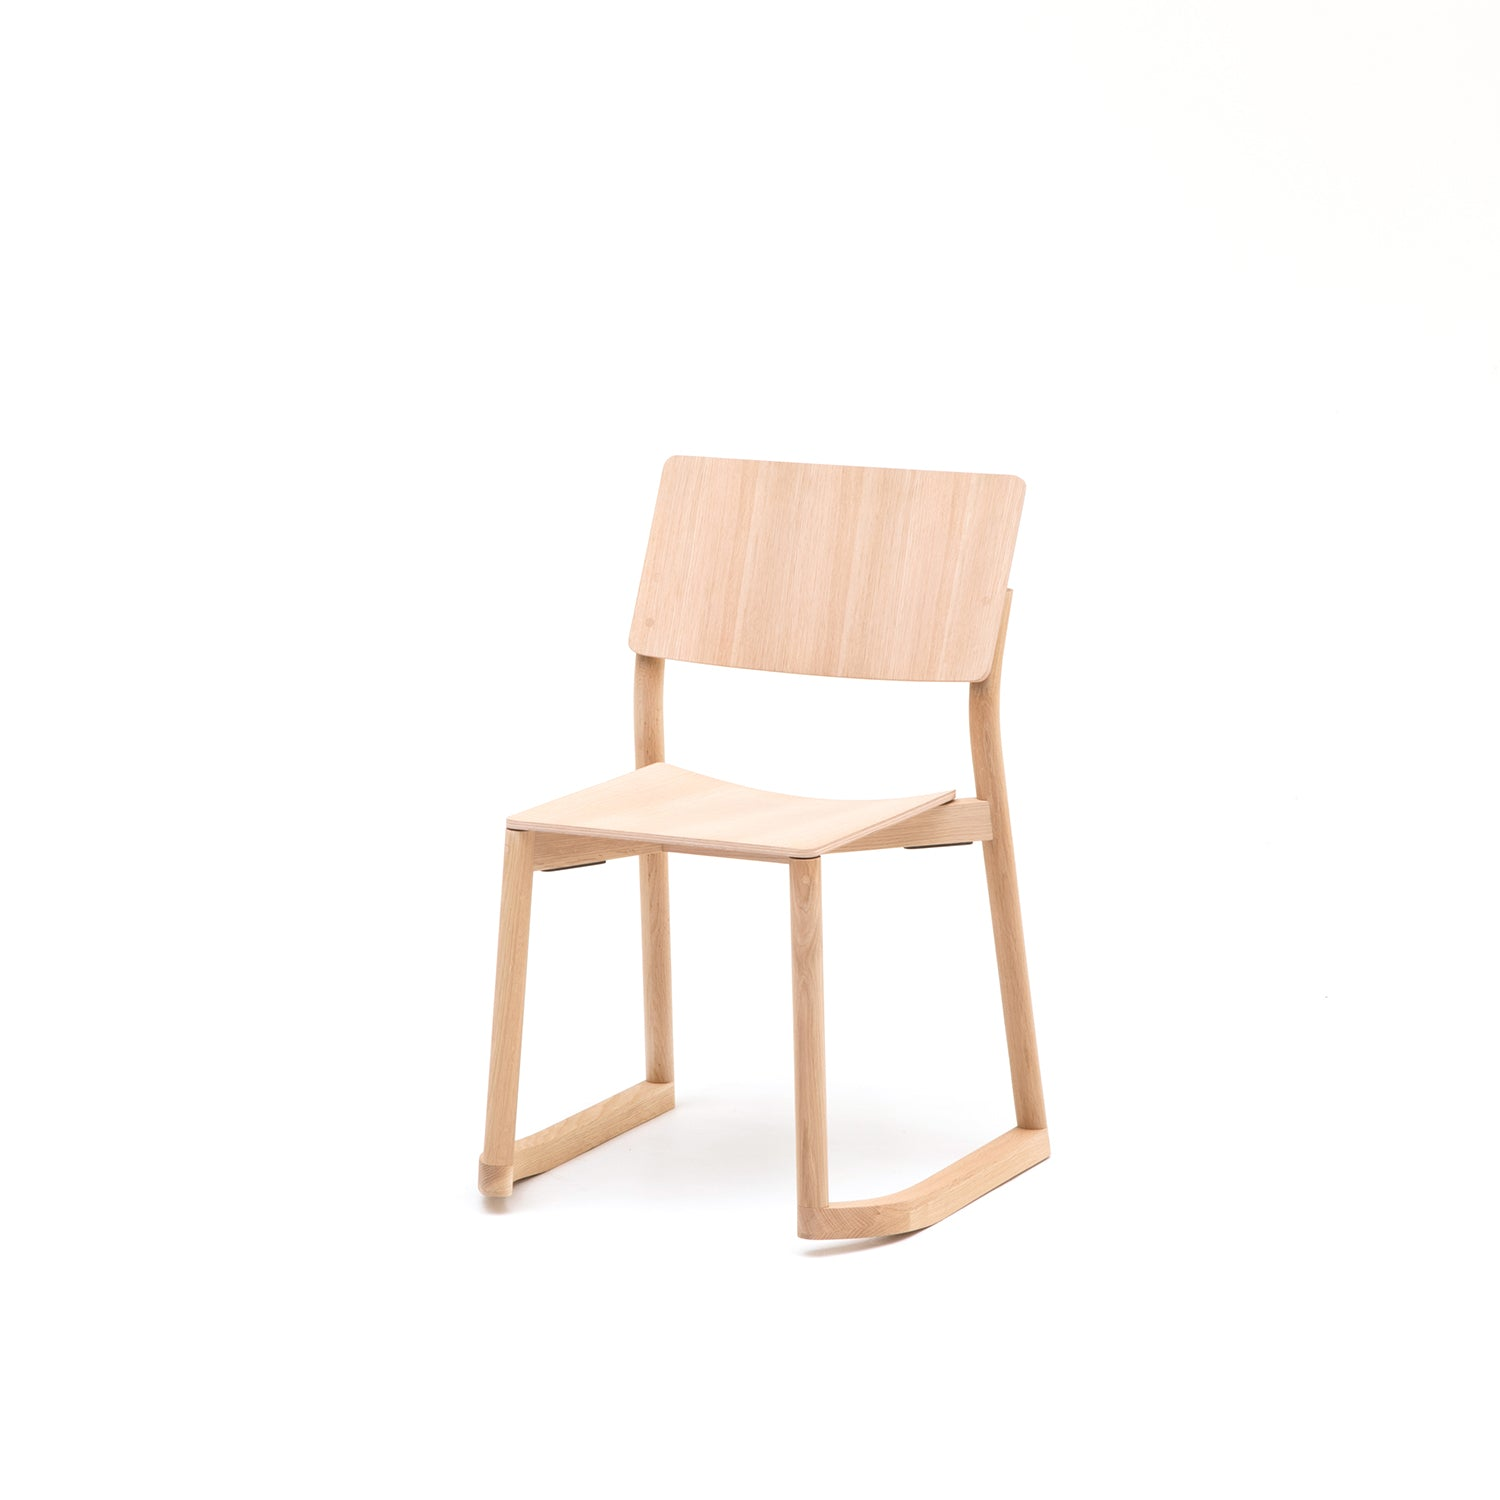 Panorama Chair With Runners: Pure Oak